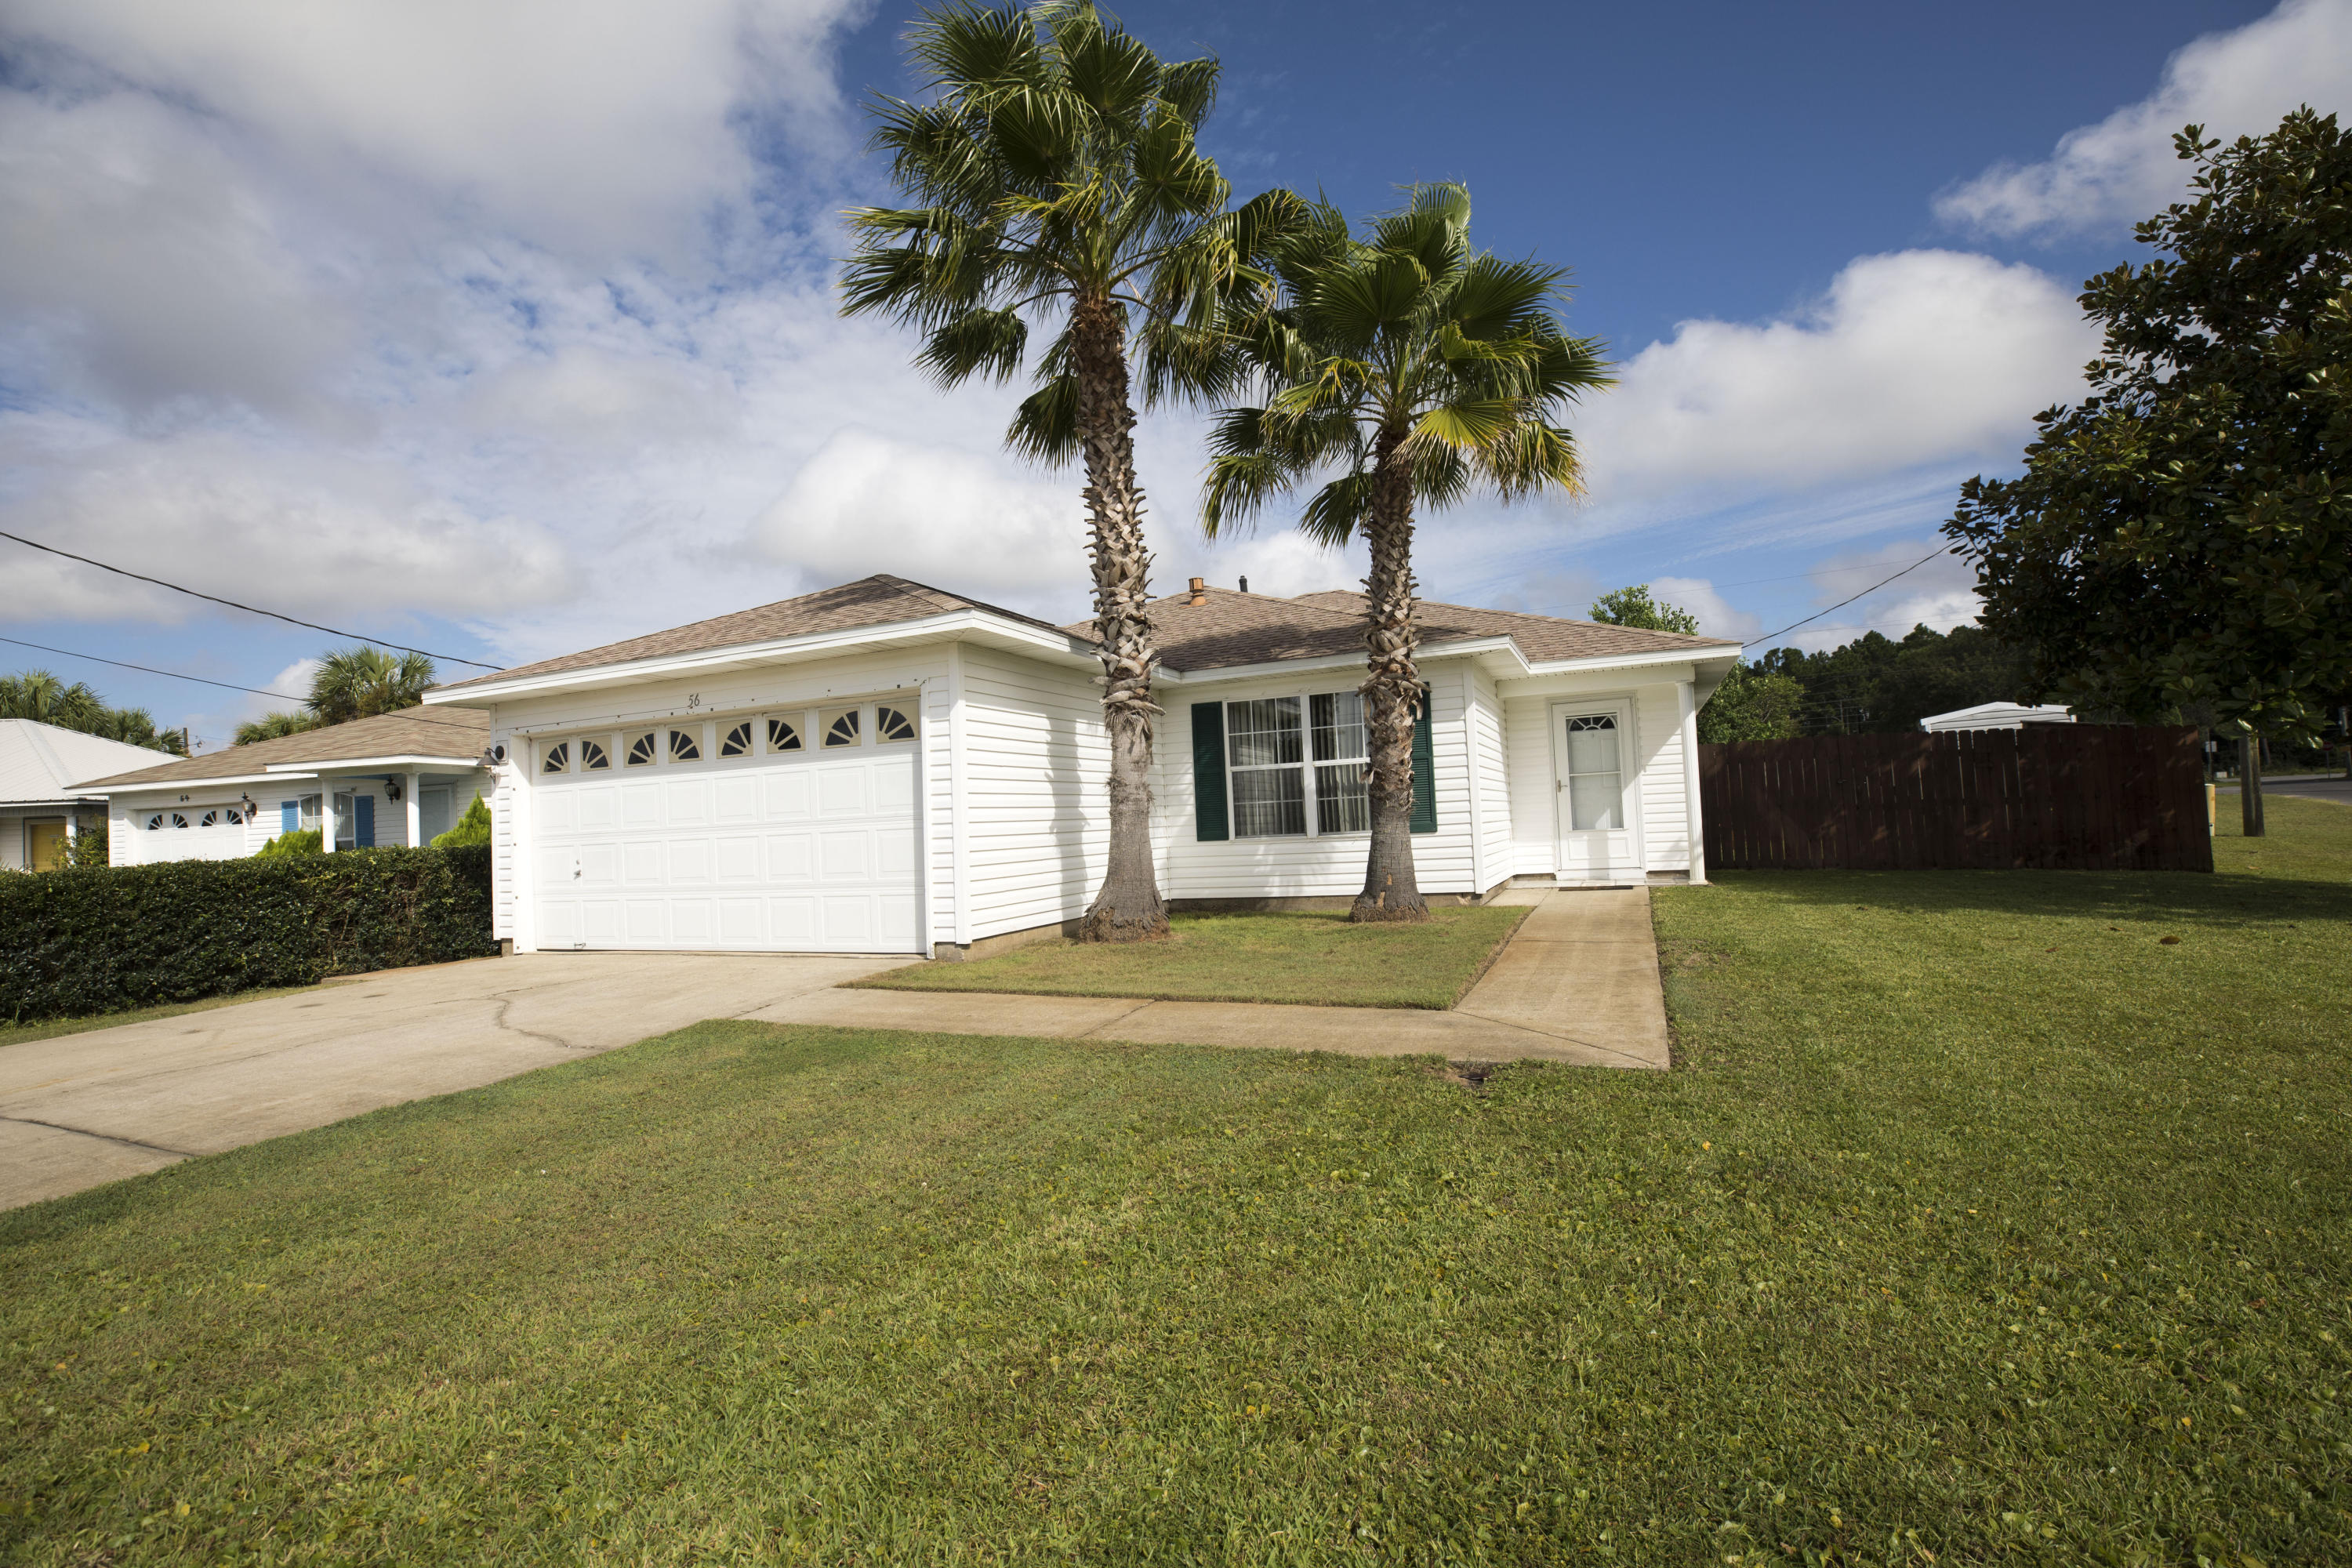 Photo of home for sale at 56 Stowe, Mary Esther FL